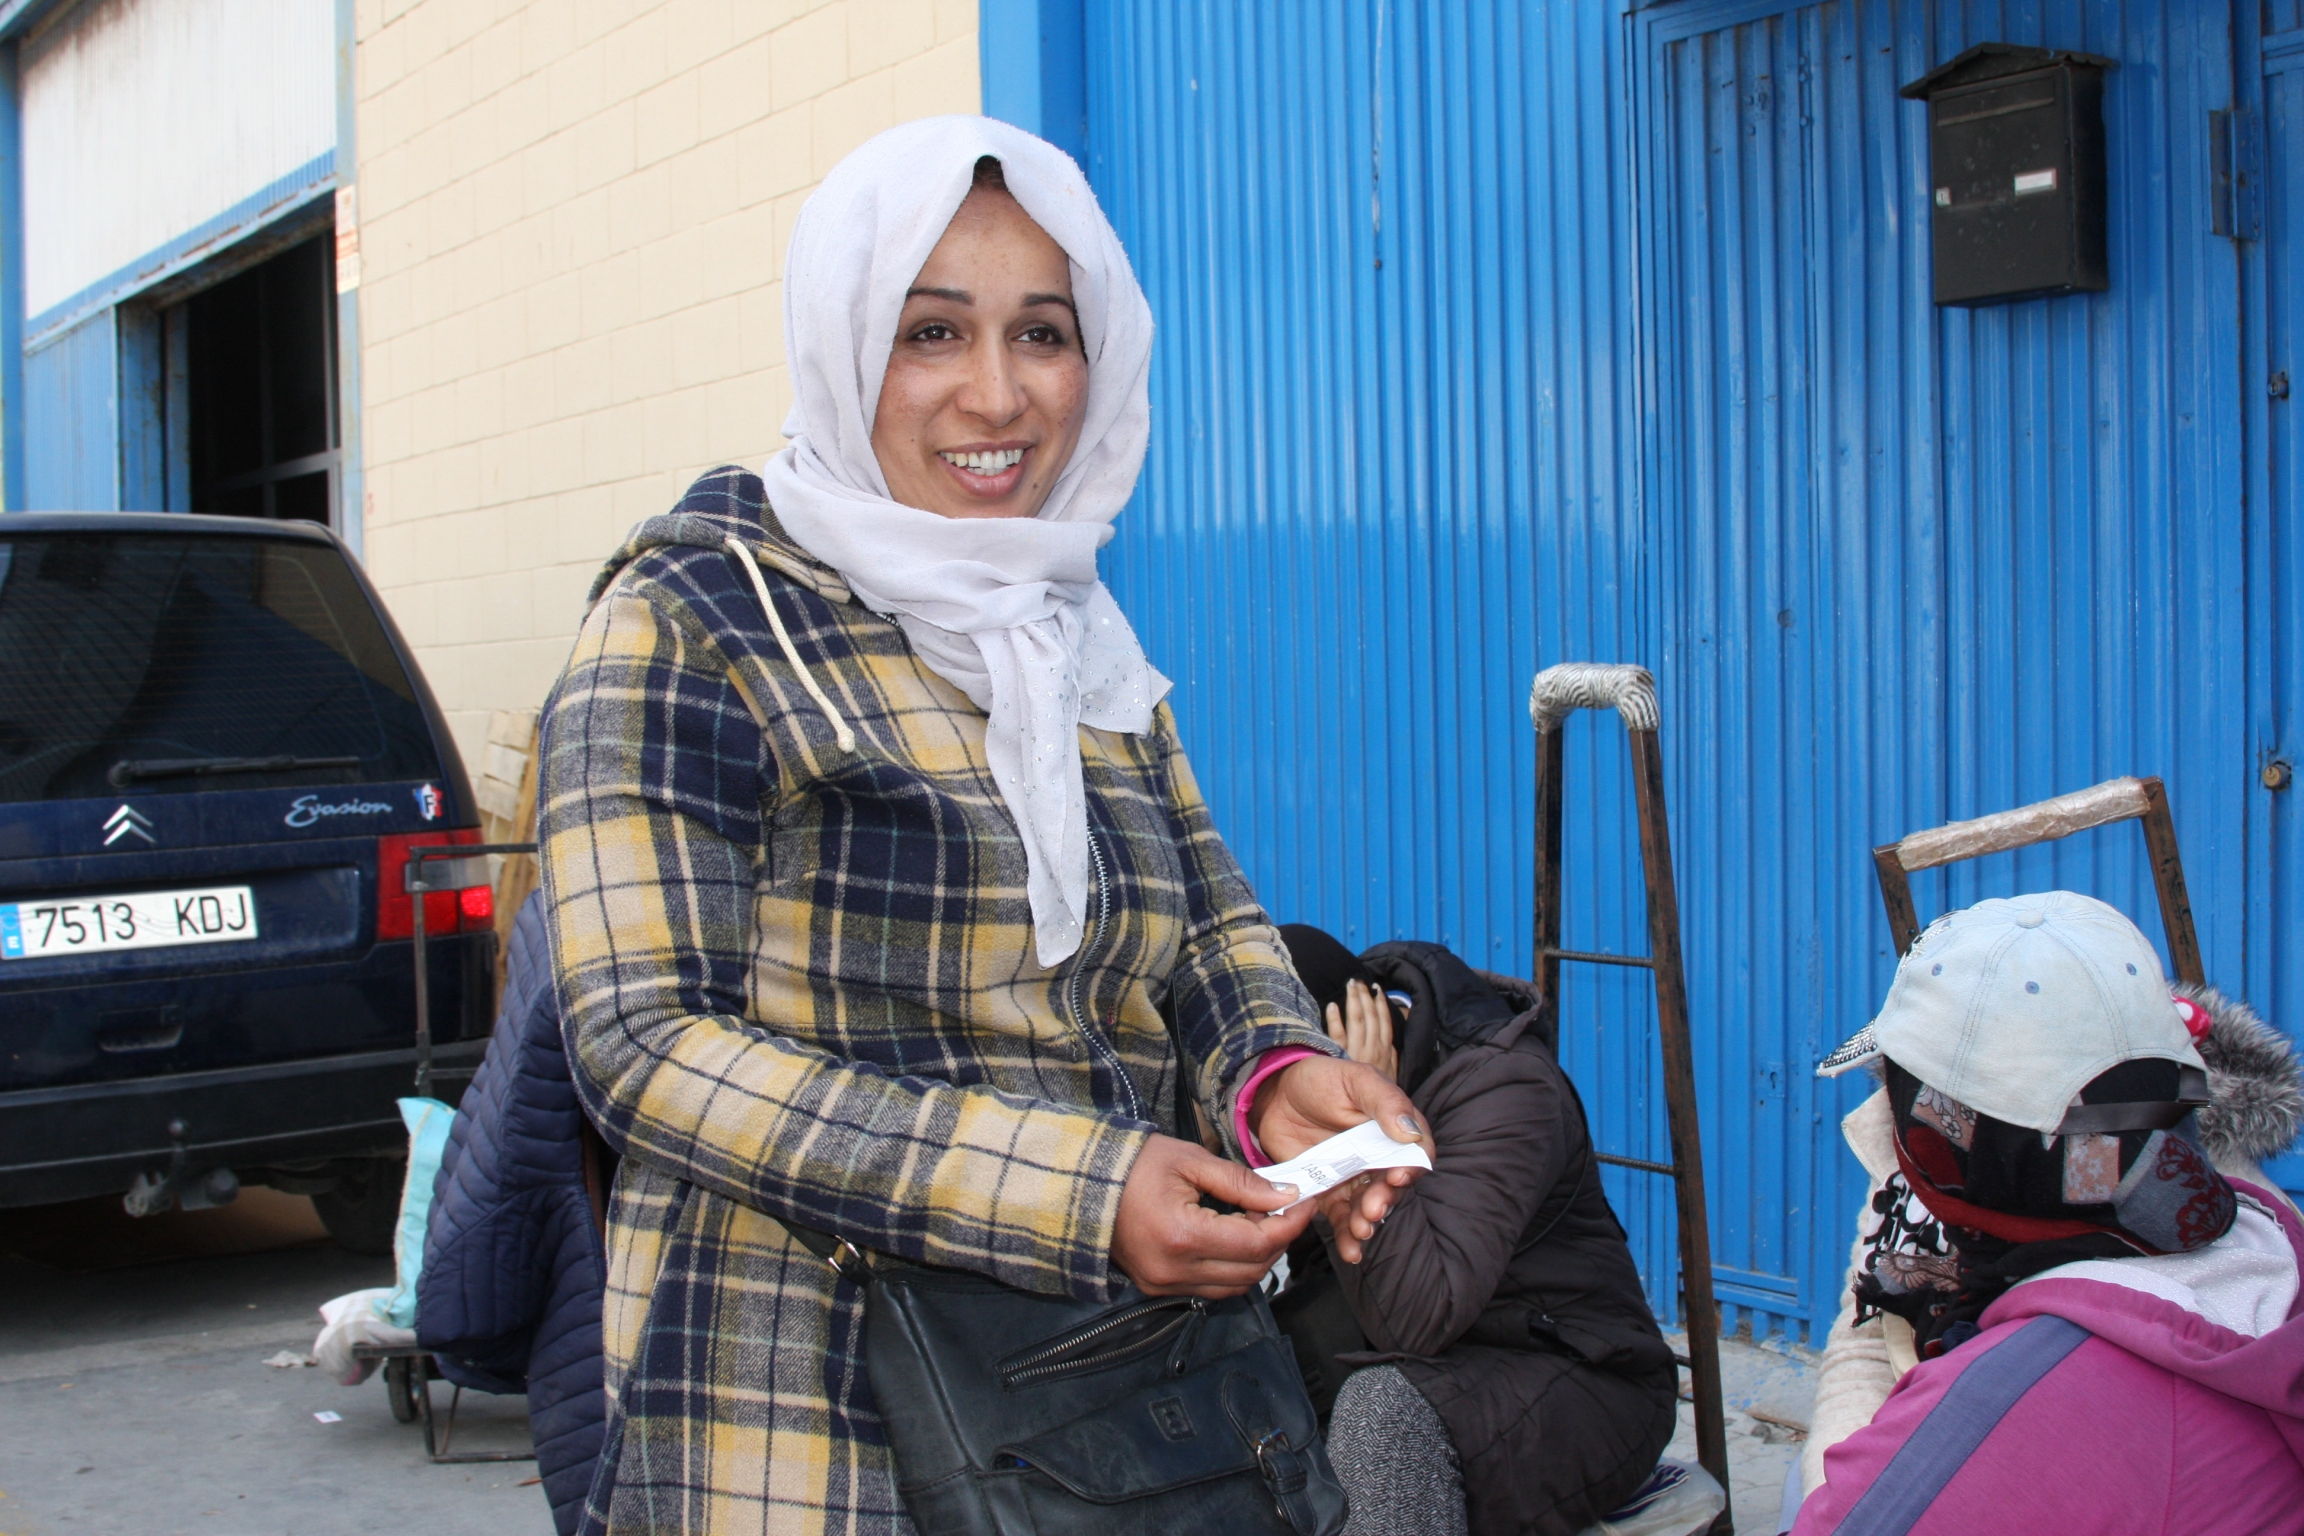 Woman in white scarf and plaid yellow jacket holds a white ticket in her hand